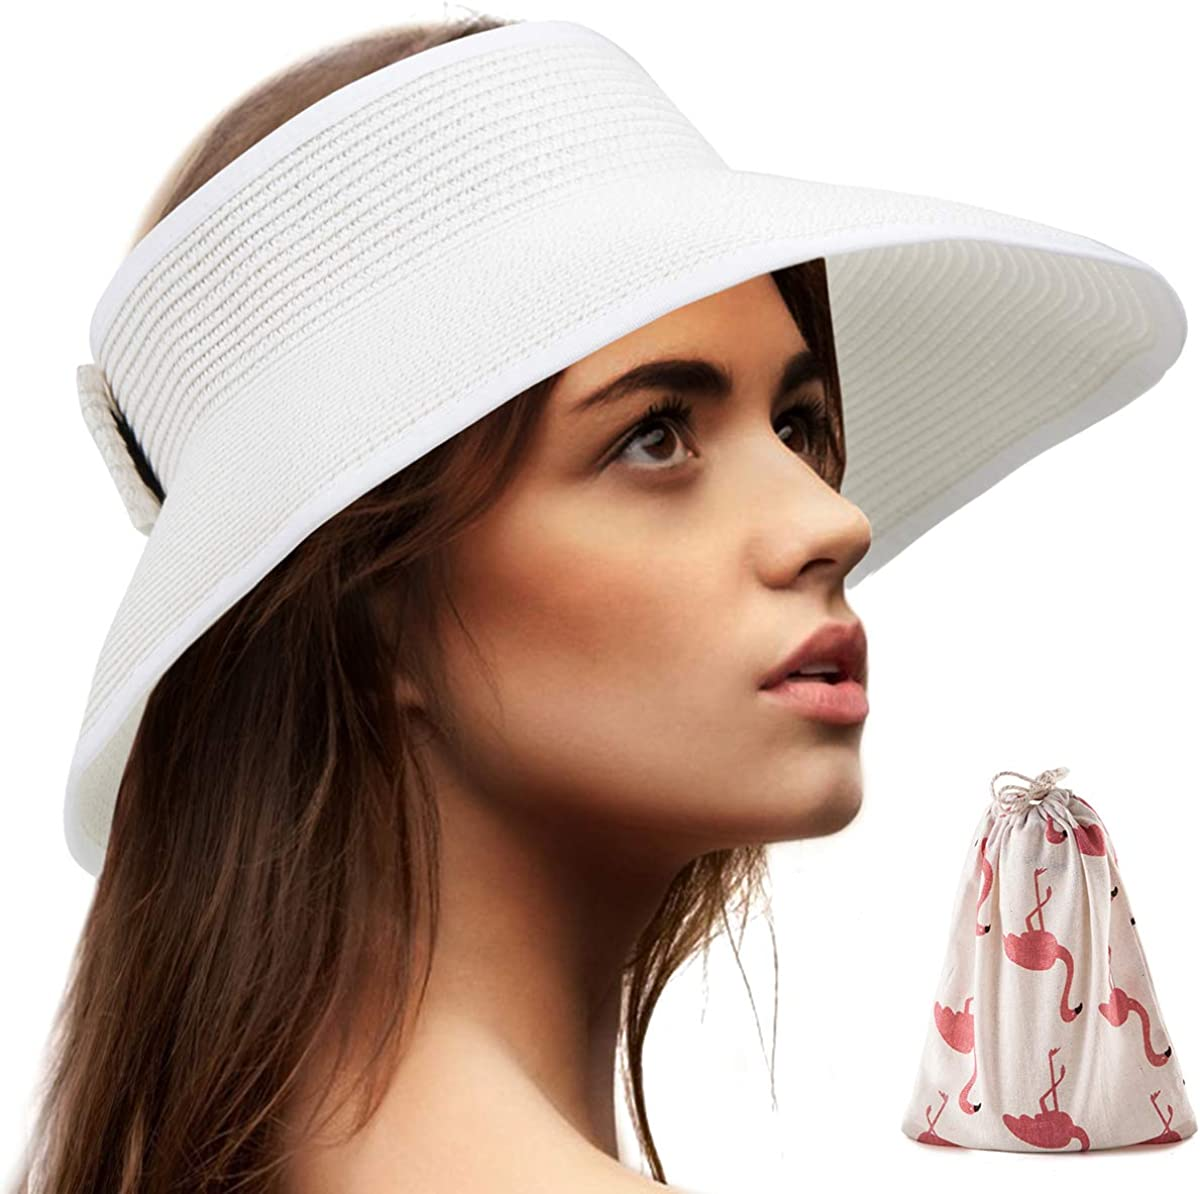 Free Shipping Collapsible Large Brim Striped Straw Visor Hats